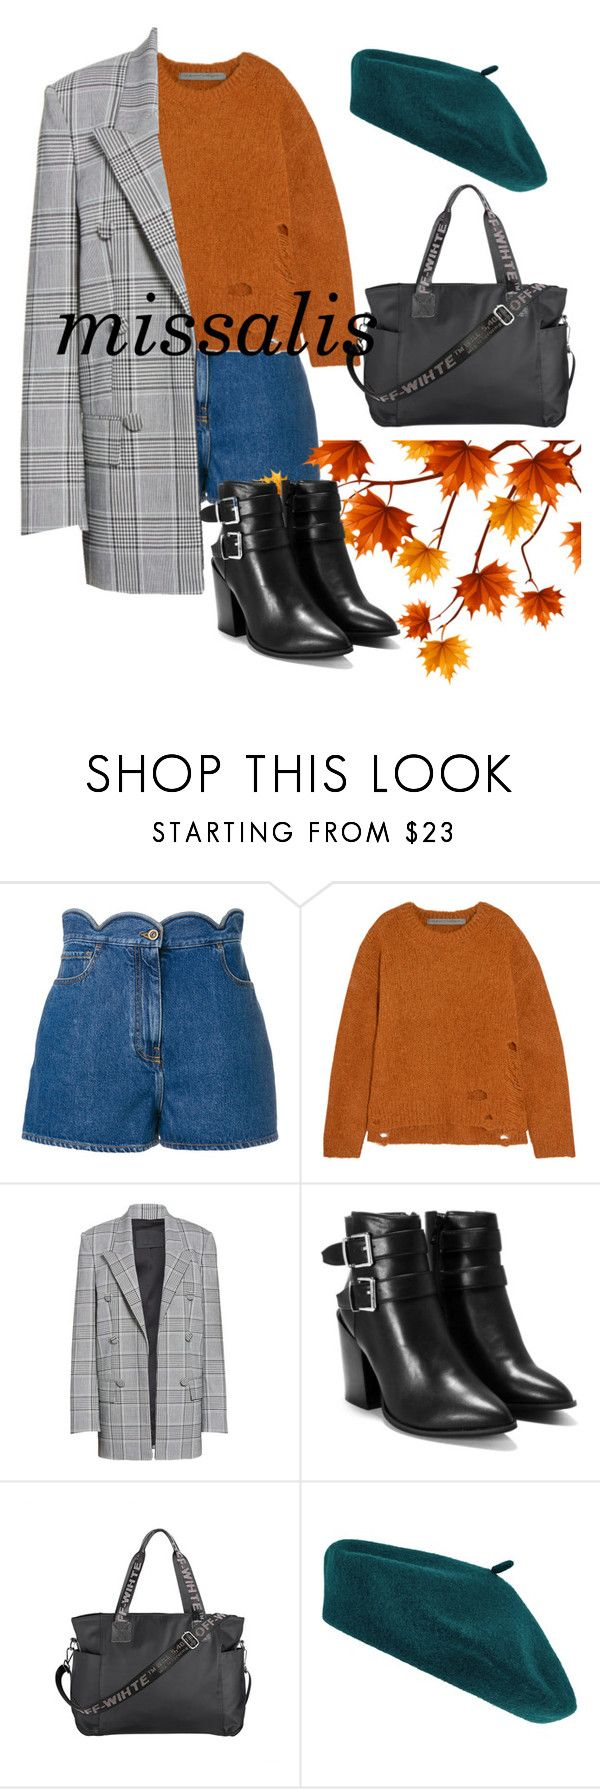 """""""missalis bag autumn choose"""" by wodluckbeens on Polyvore featuring Valentino, Raquel Allegra, Alexander Wang, Nasty Gal and Accessorize"""